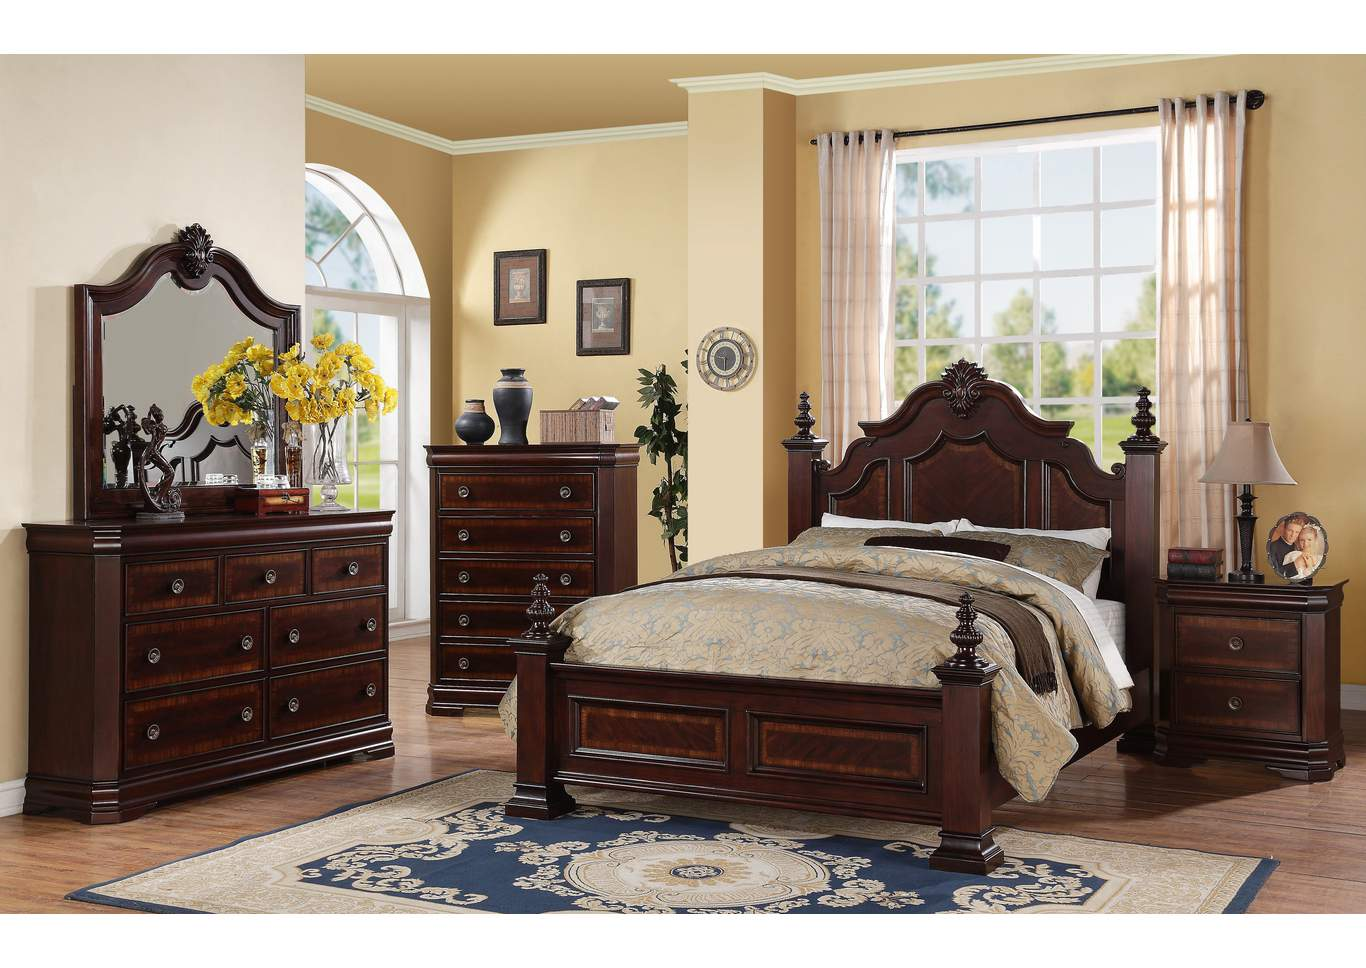 Charlotte Queen Poster Bed w/Dresser, Mirror, Drawer Chest and Nightstand,Crown Mark